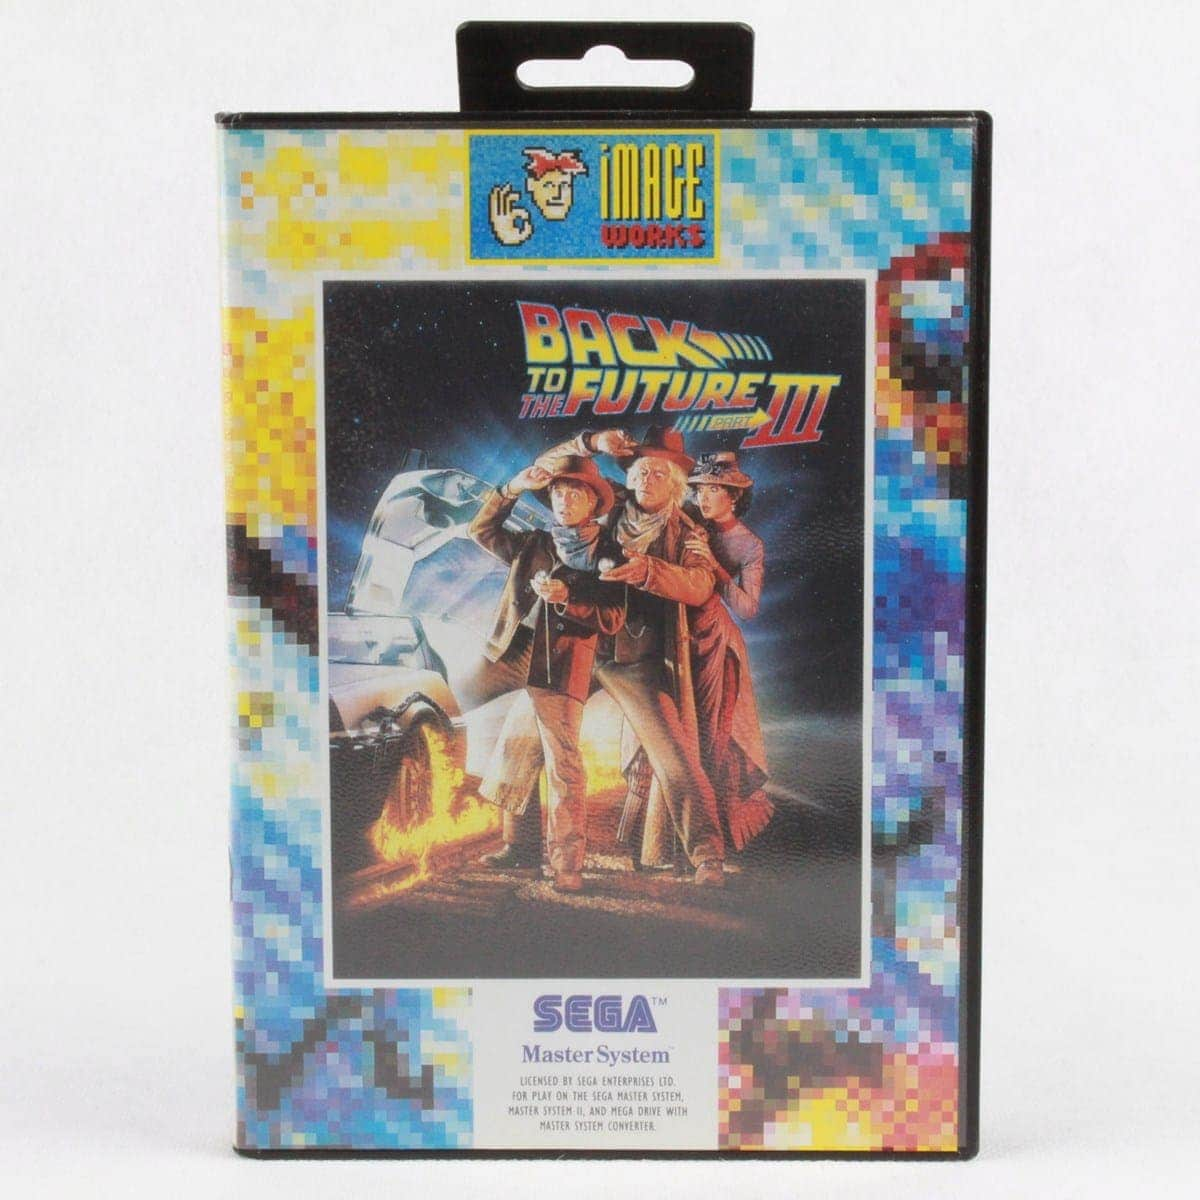 Back to the Future Part III (SEGA Master System)